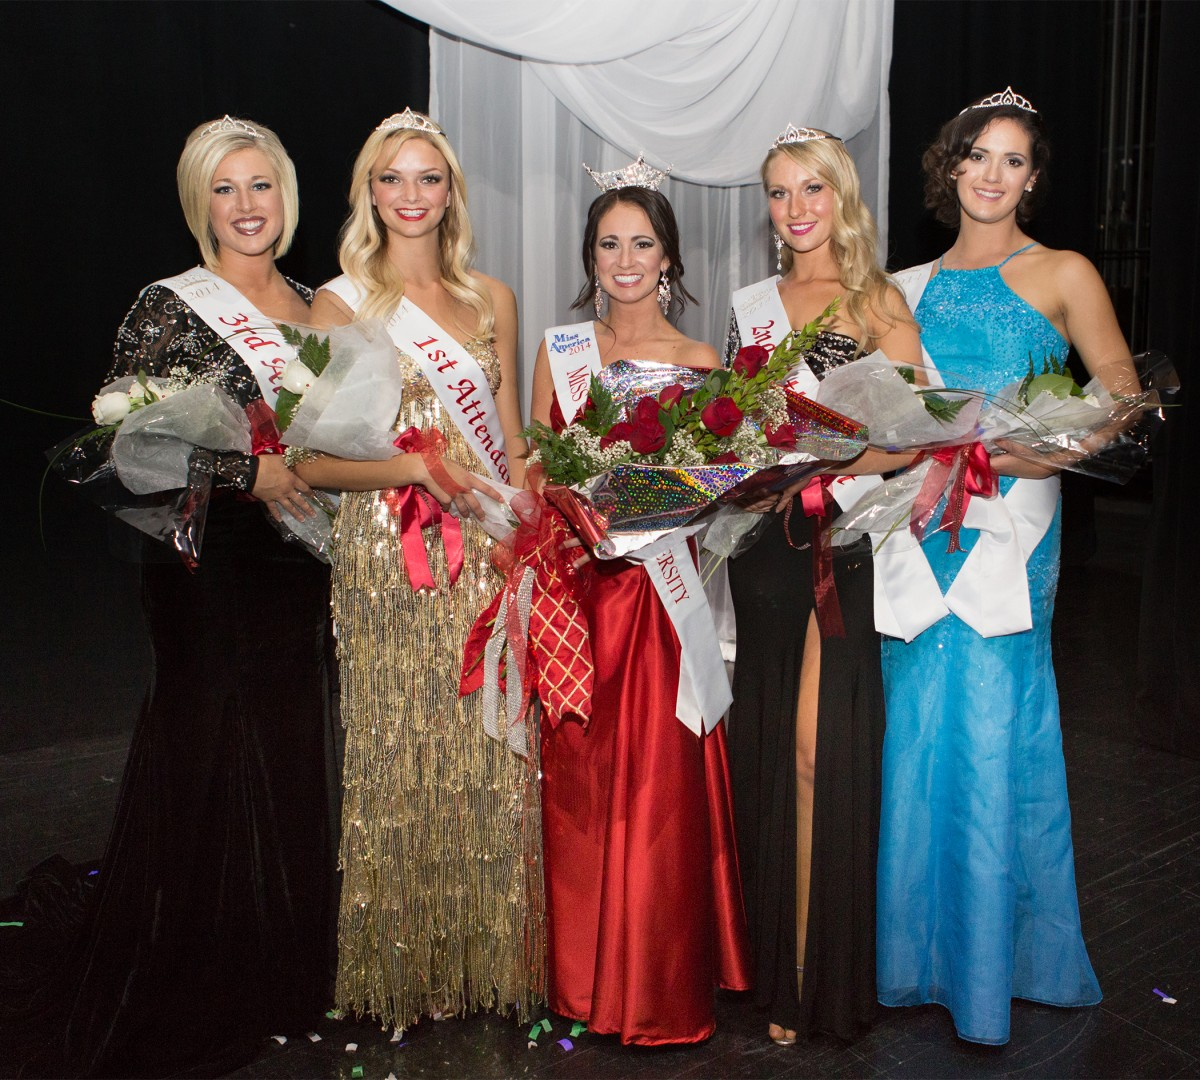 Miss Dixie State Homecoming Queen 2013 Shaelie Knutson (center), poses with her court at the conclusion of DSU's Miss Dixie State Homecoming Queen Pageant, St. George, UT, Oct. 16, 2013 | Photo courtesy of DSU